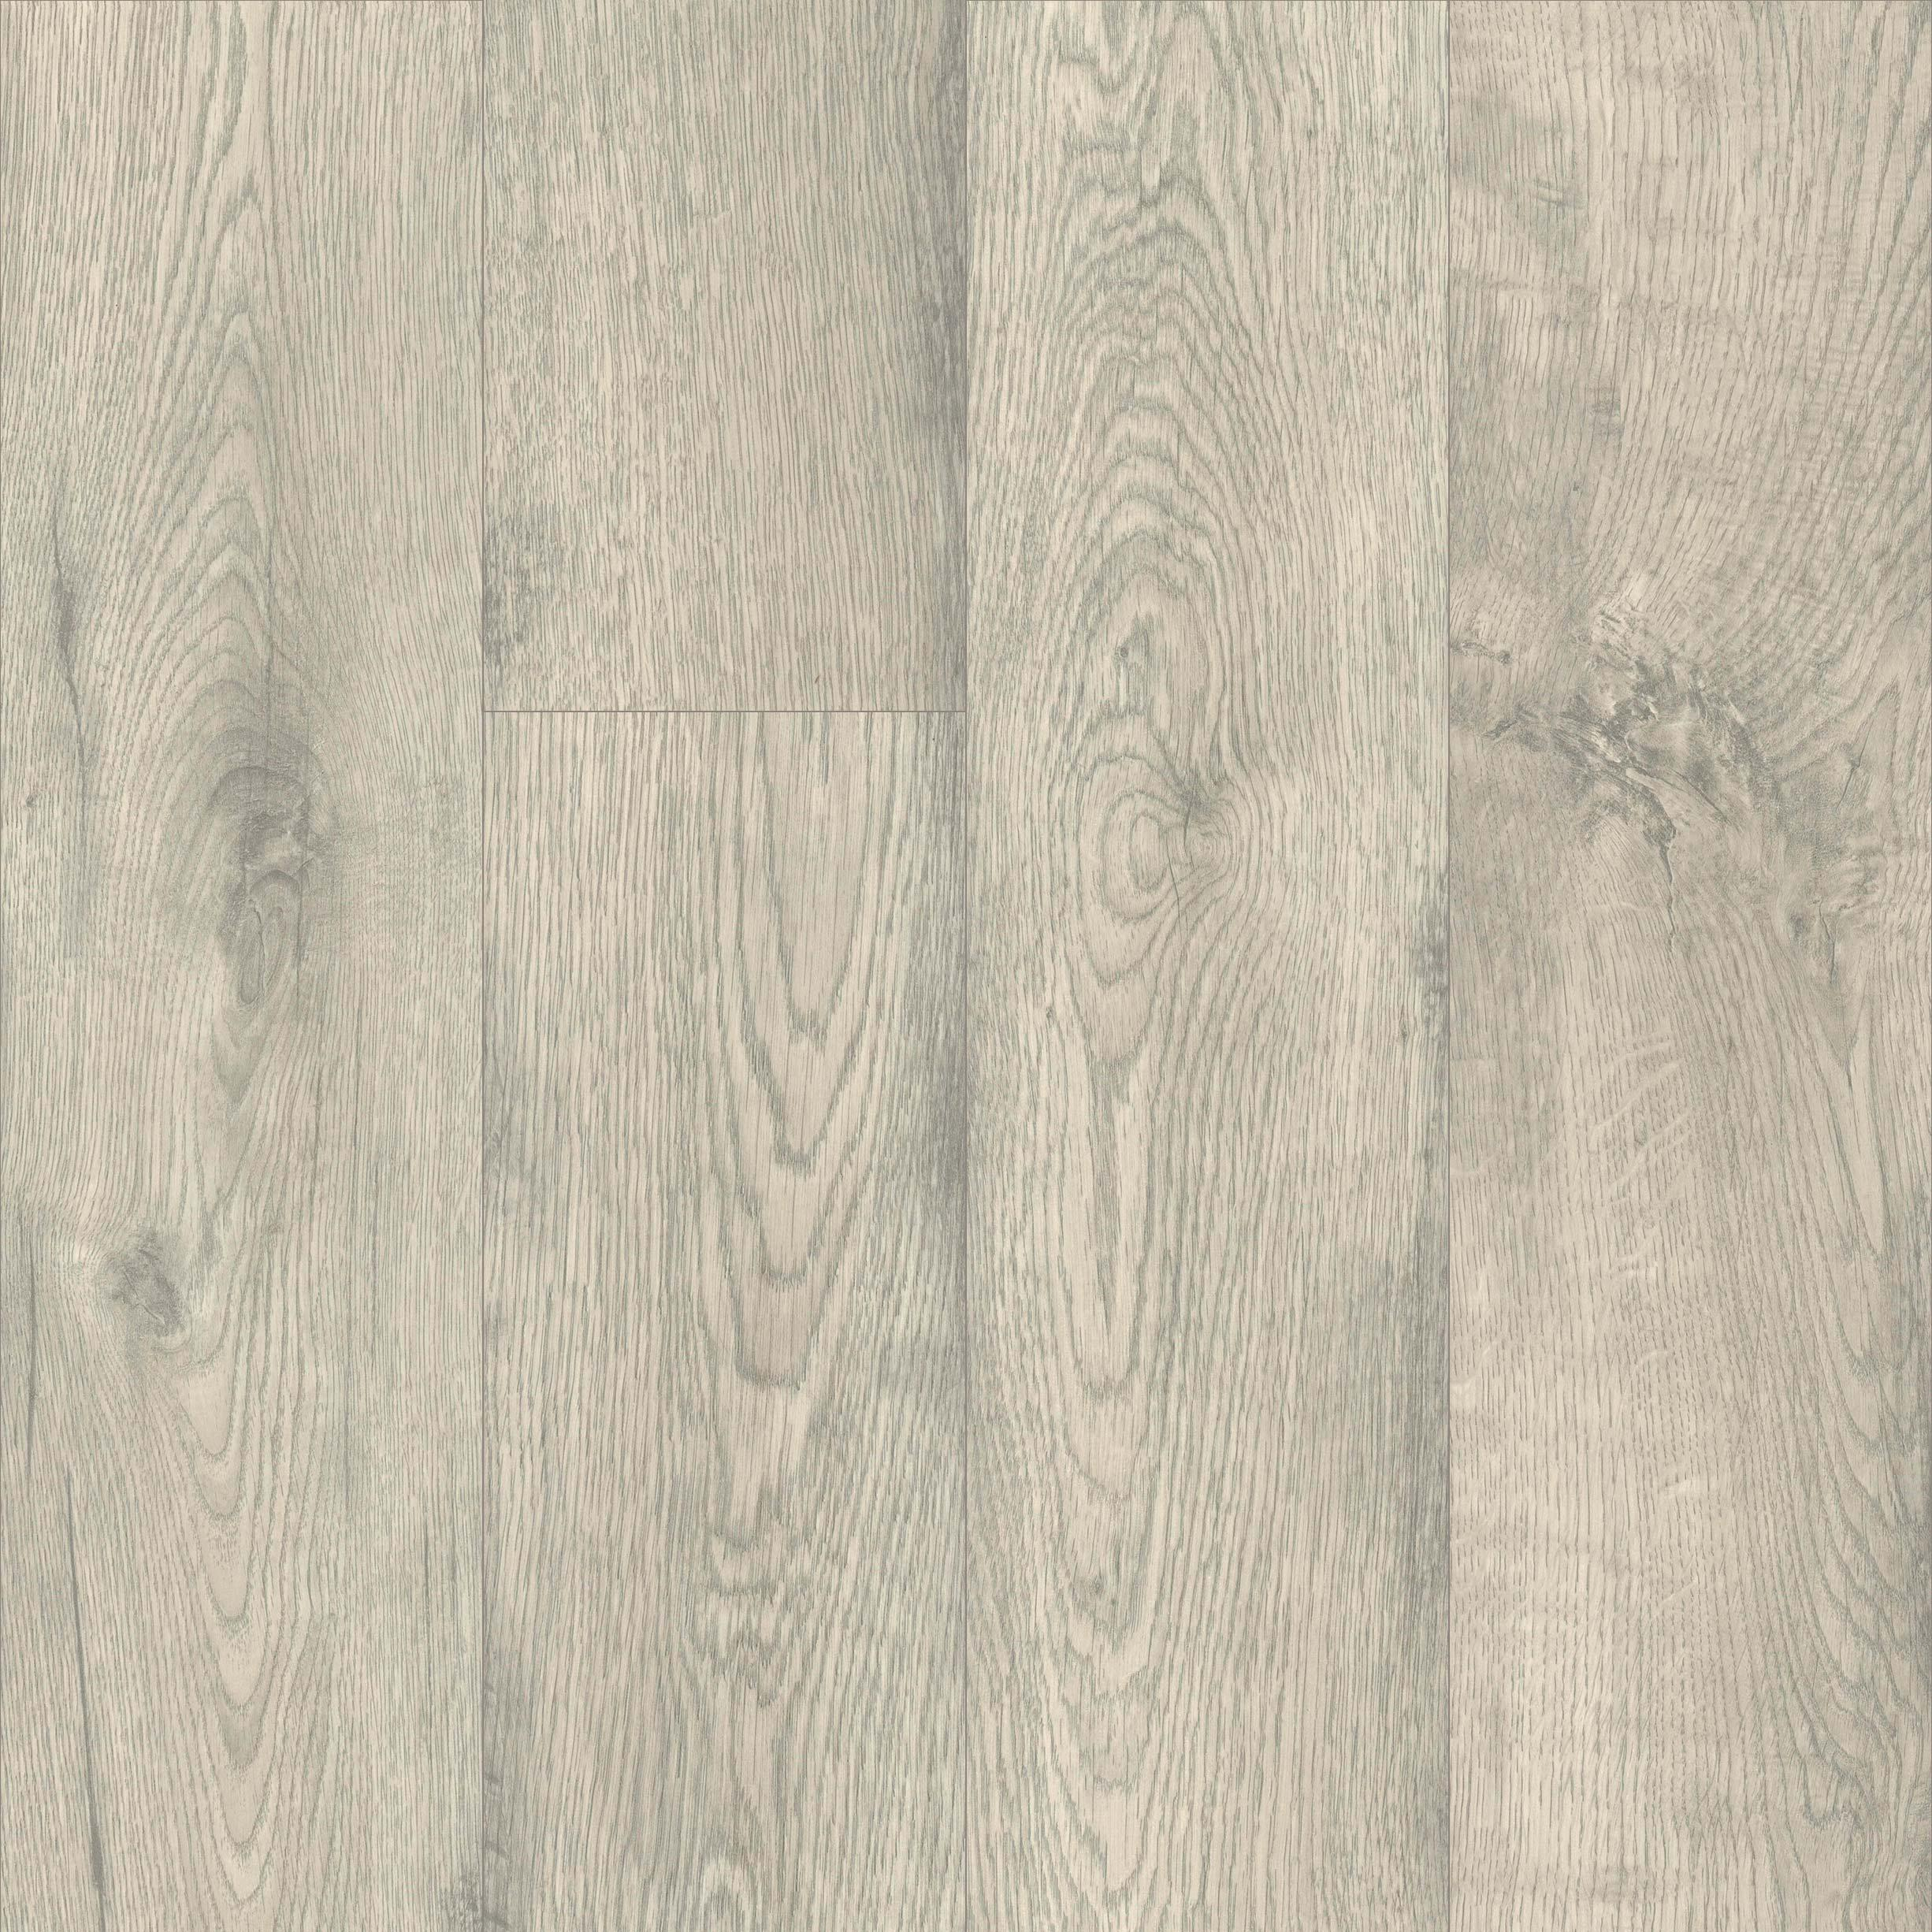 Free Underlayment Included Quick Step Elevae Naturetek Lambs Wool Oak Plank 12mm Laminate Flooring Us3532 Laminate Flooring Oak Planks Underlayment